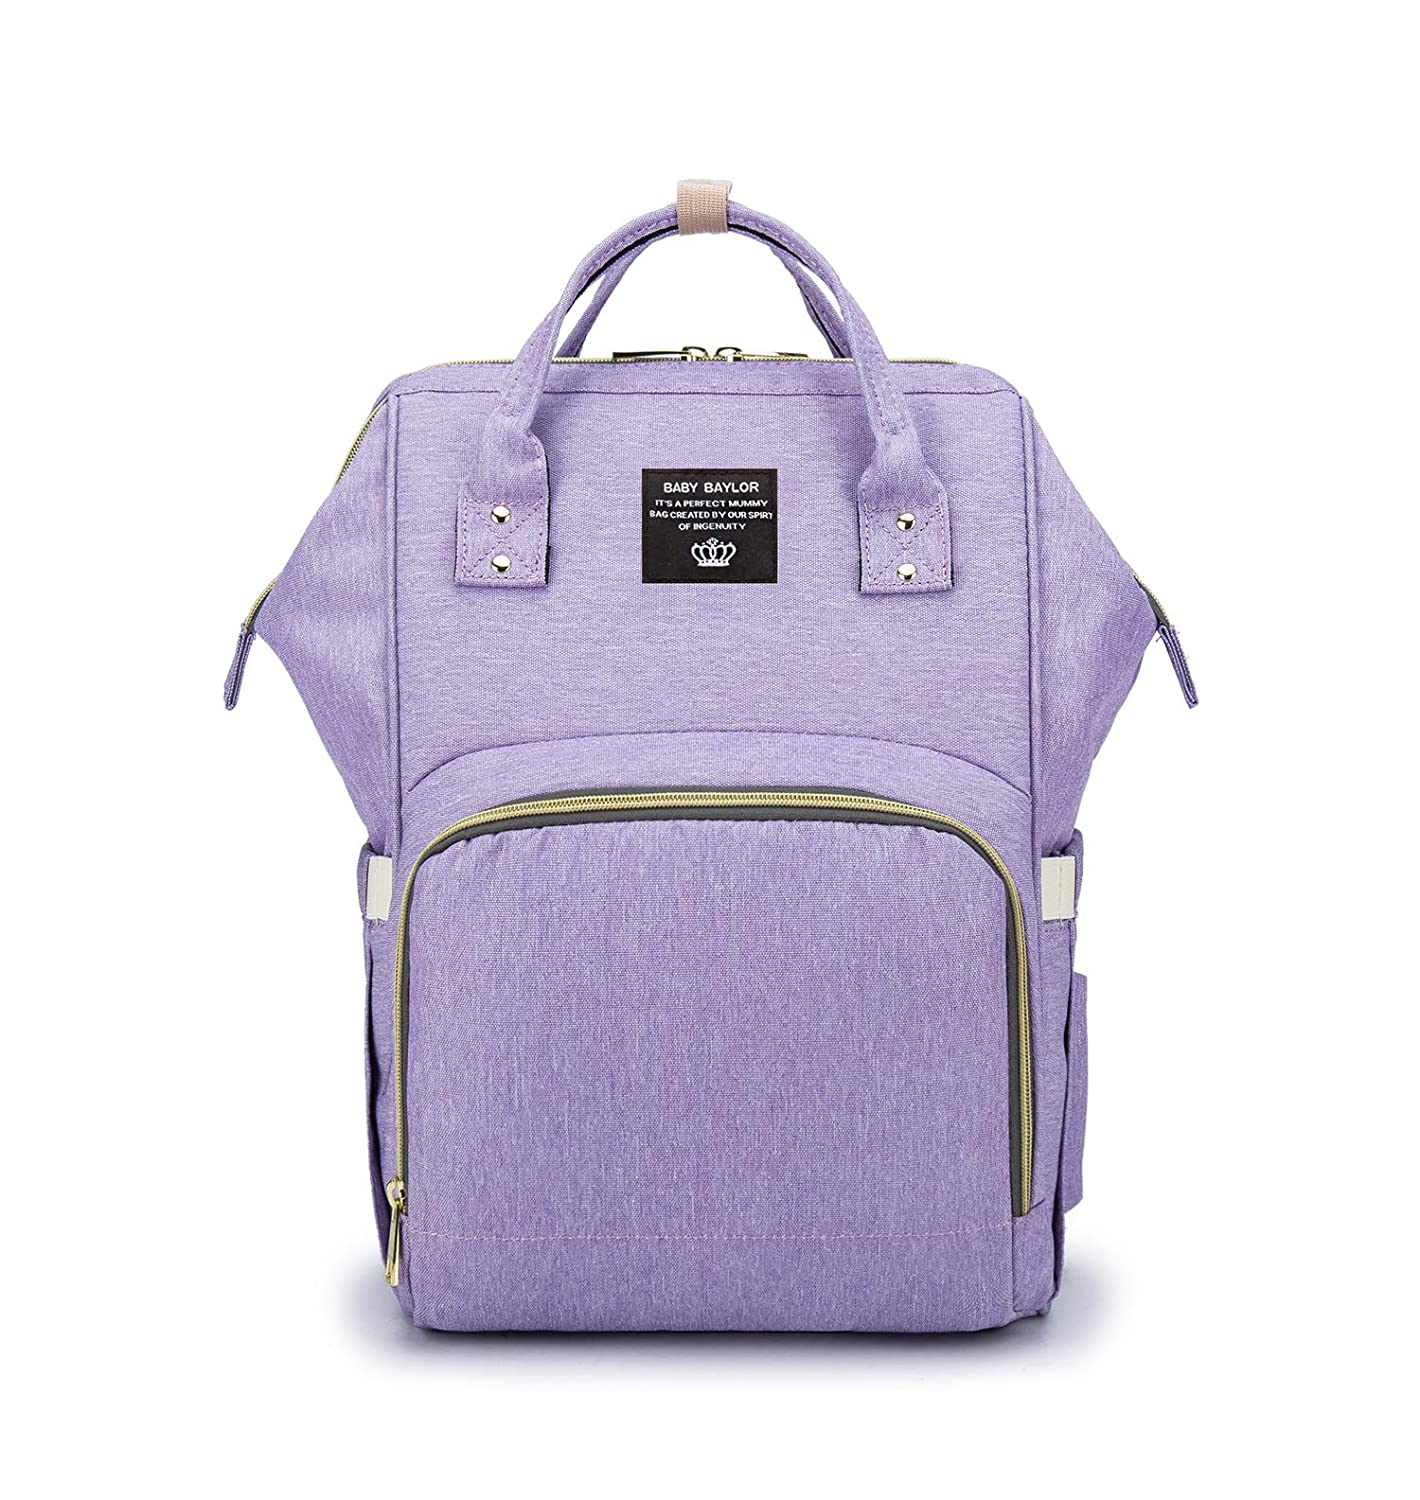 PULUSI 20-35L Diaper Bag Backpack,Multi-Function Oxford Waterproof Maternity Baby Nursing Nappy Back Pack for Mom/Dad on Travel, Large & Stylish & Durable / 16.5x10.2x6.3